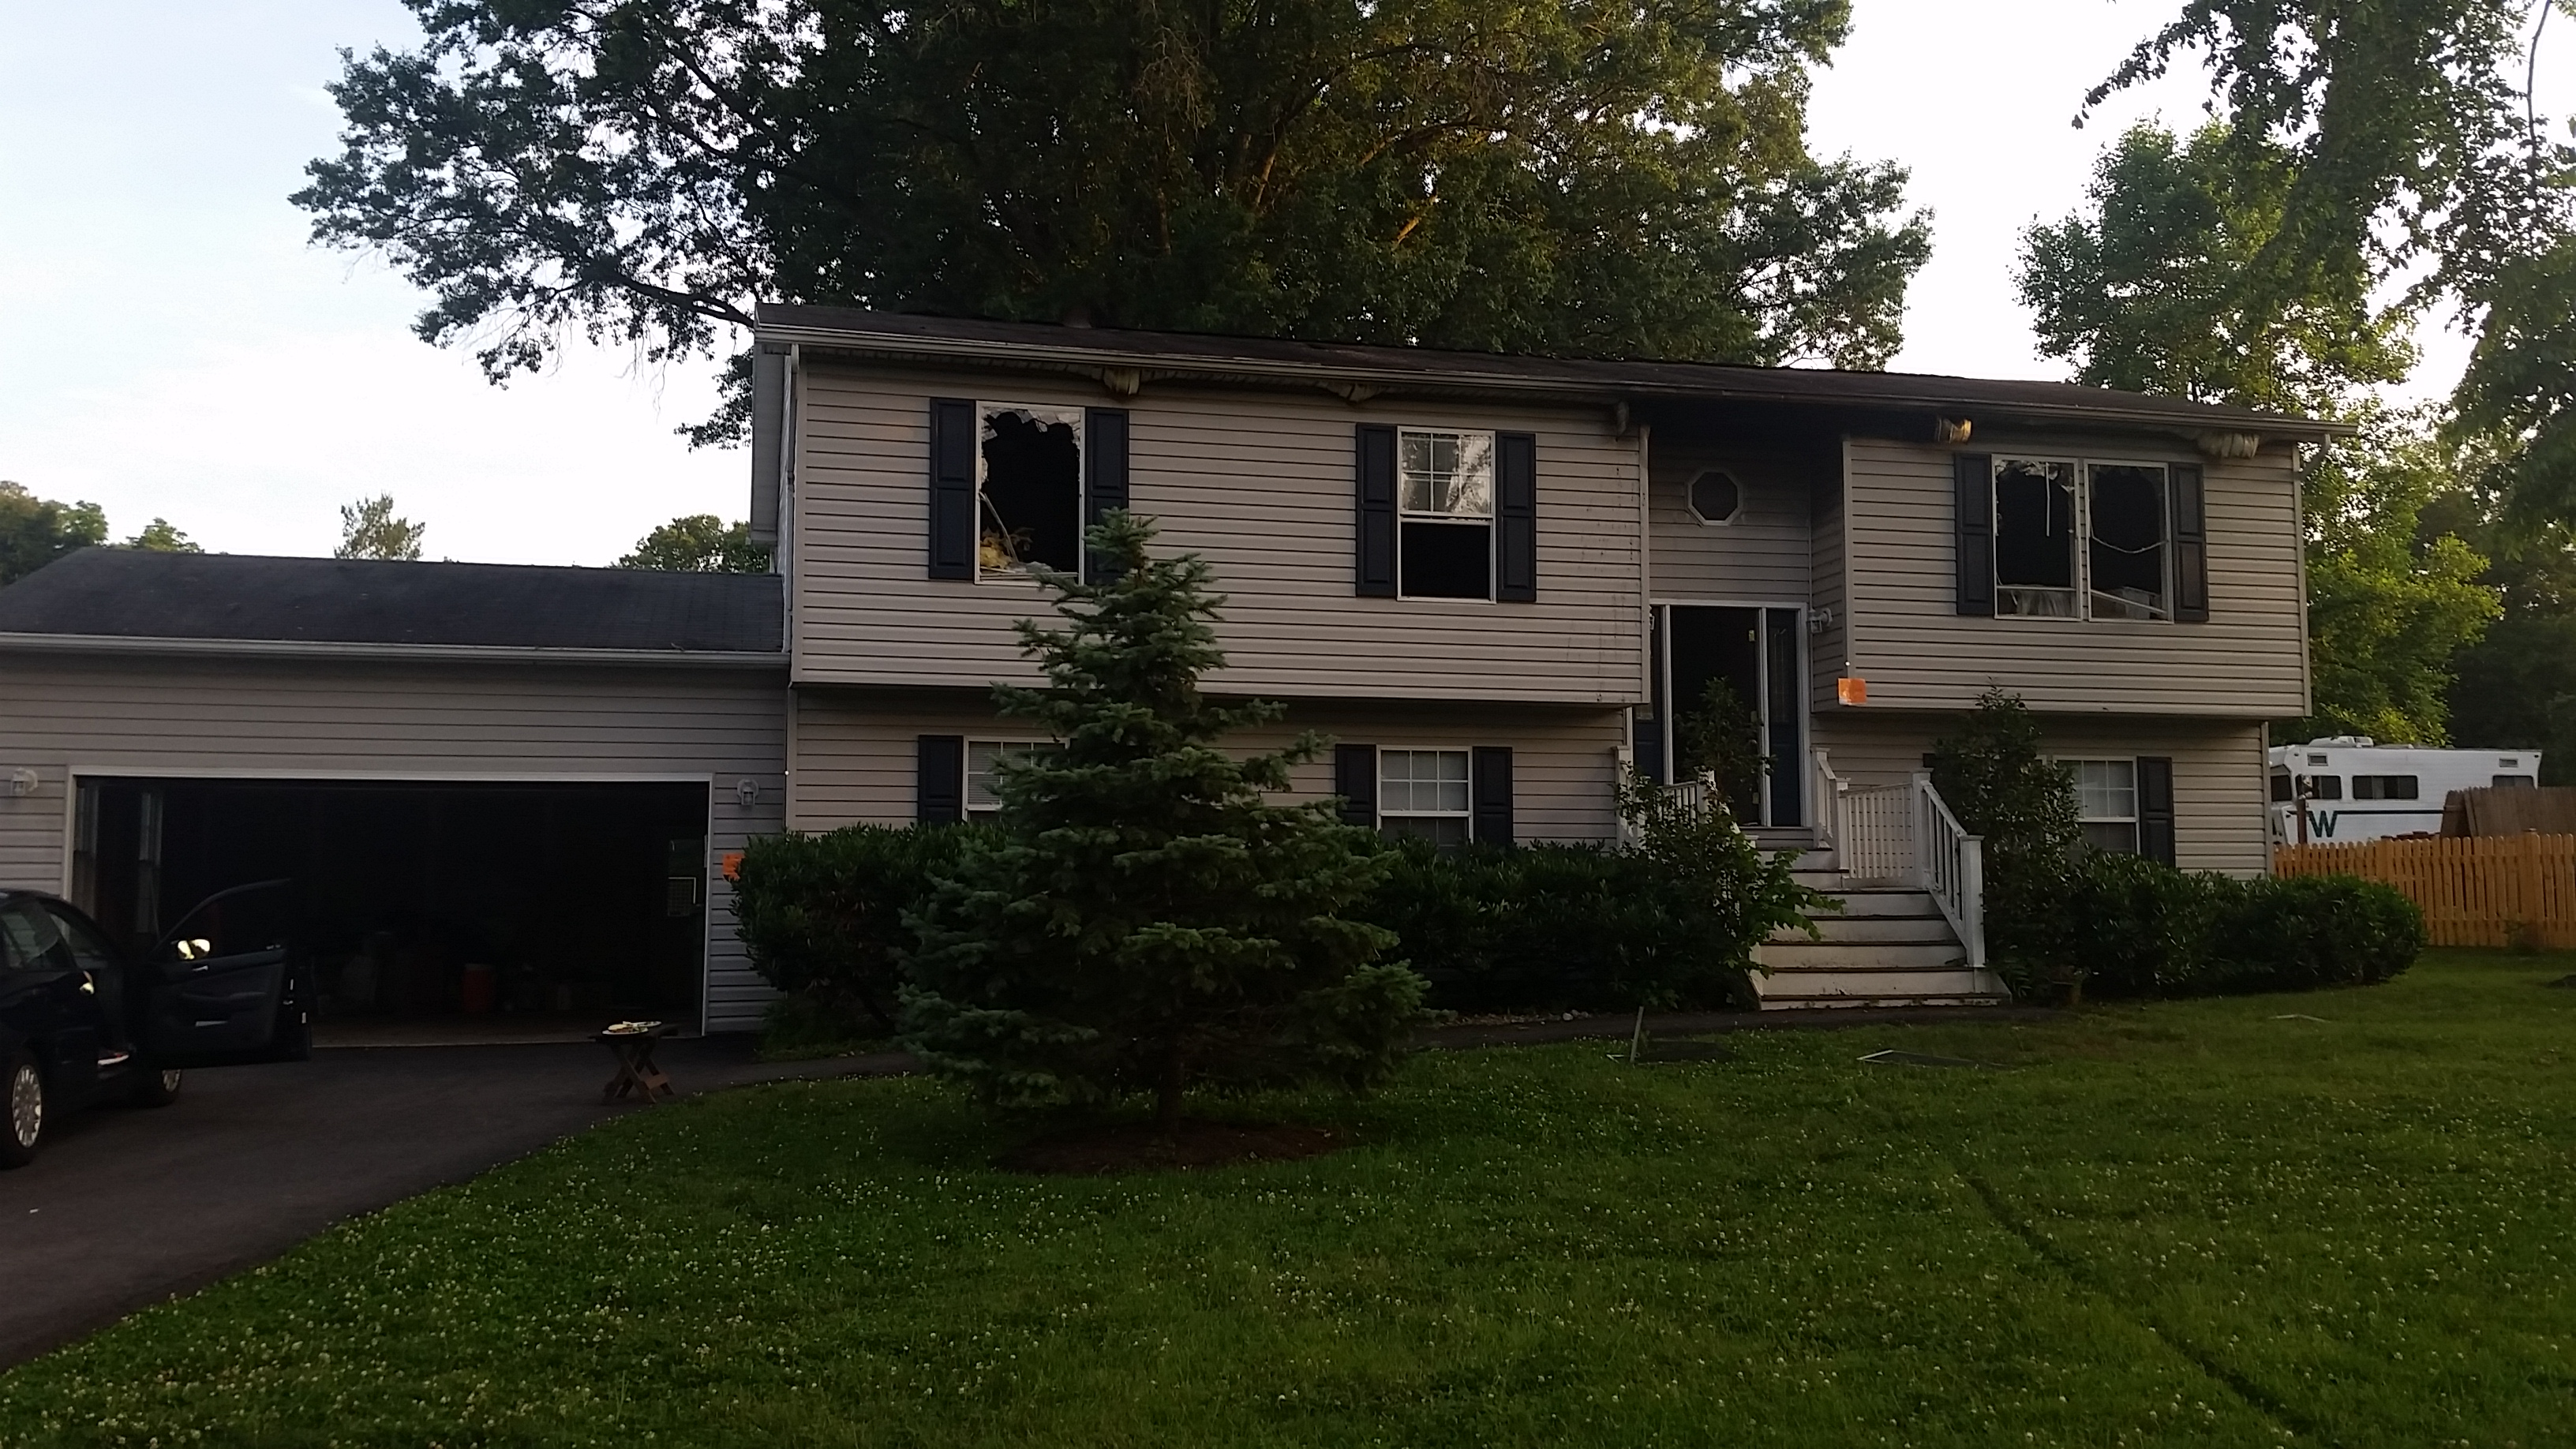 Fire Damaged Home - Front View BEFORE, insurance repair contractor